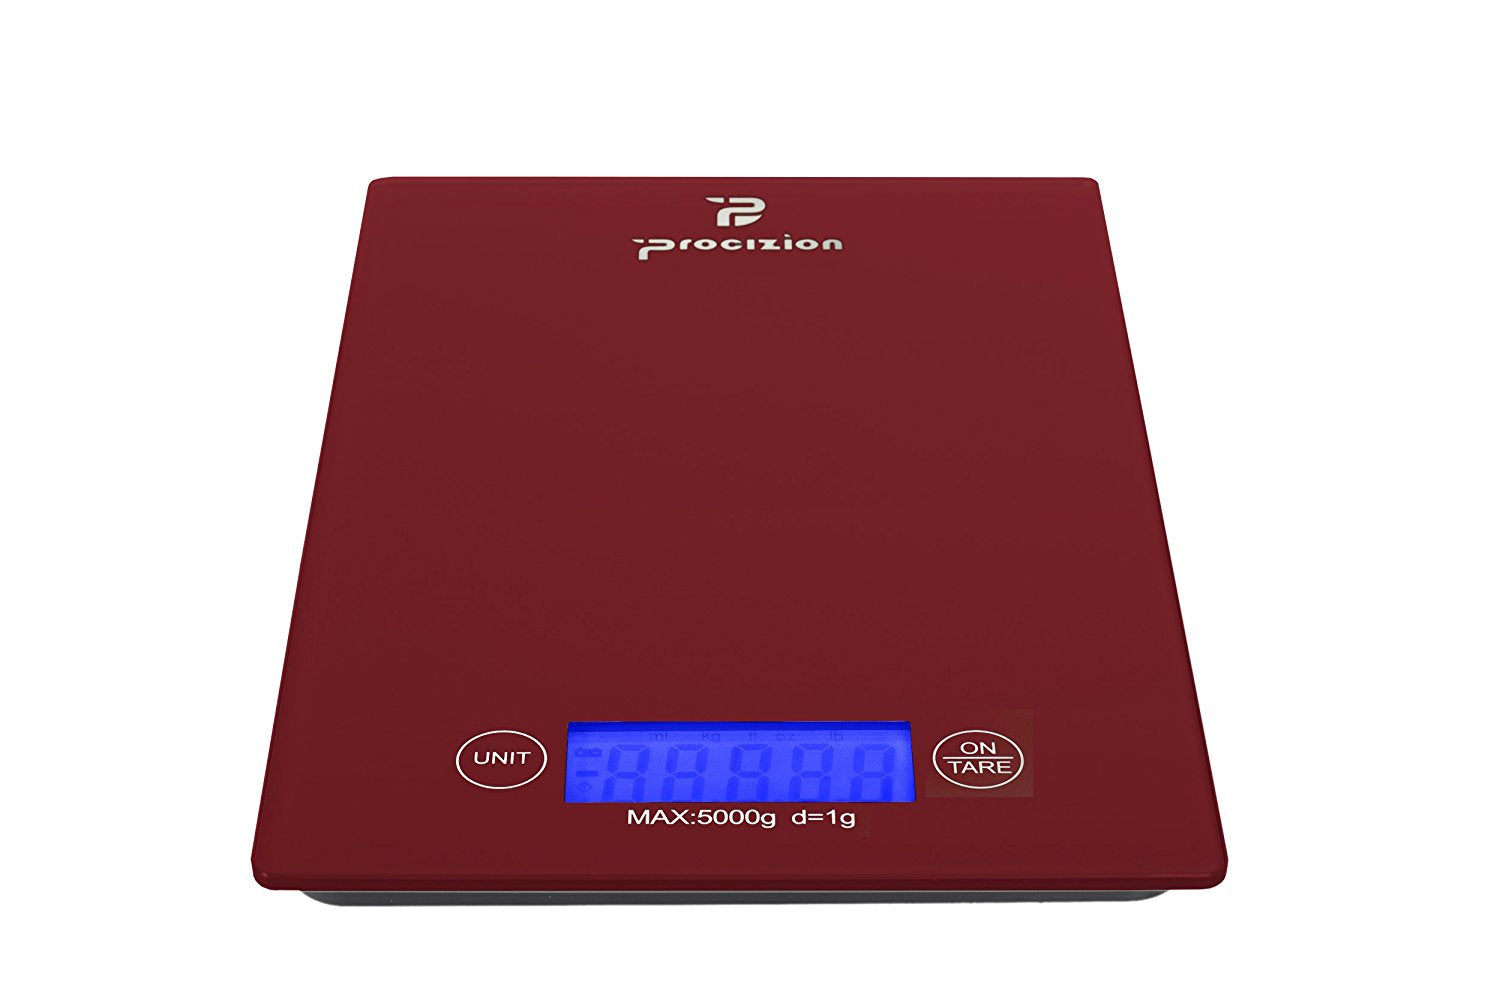 Digital Kitchen Food Scale for Precise Weighing, Measures up to 11 lb (Red)